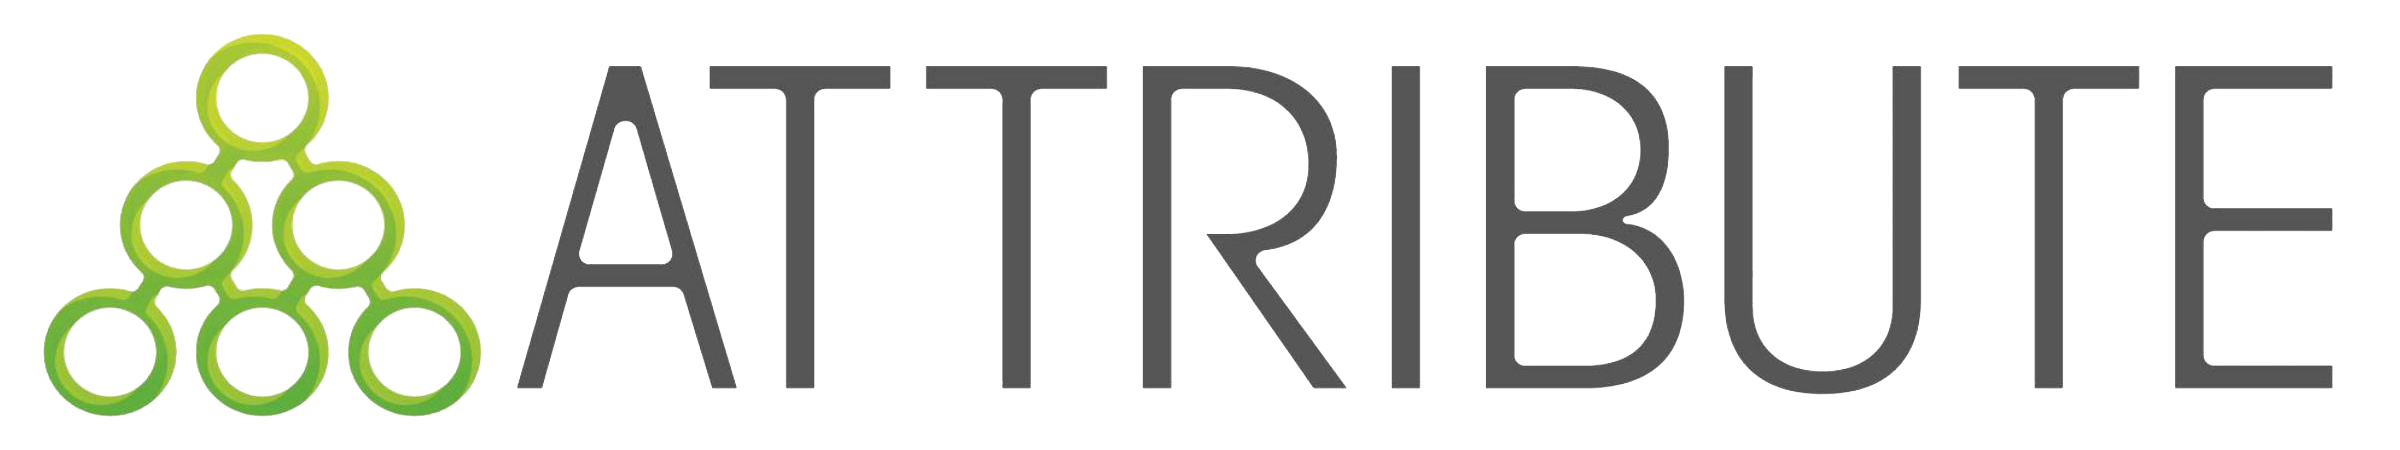 attribute_logo